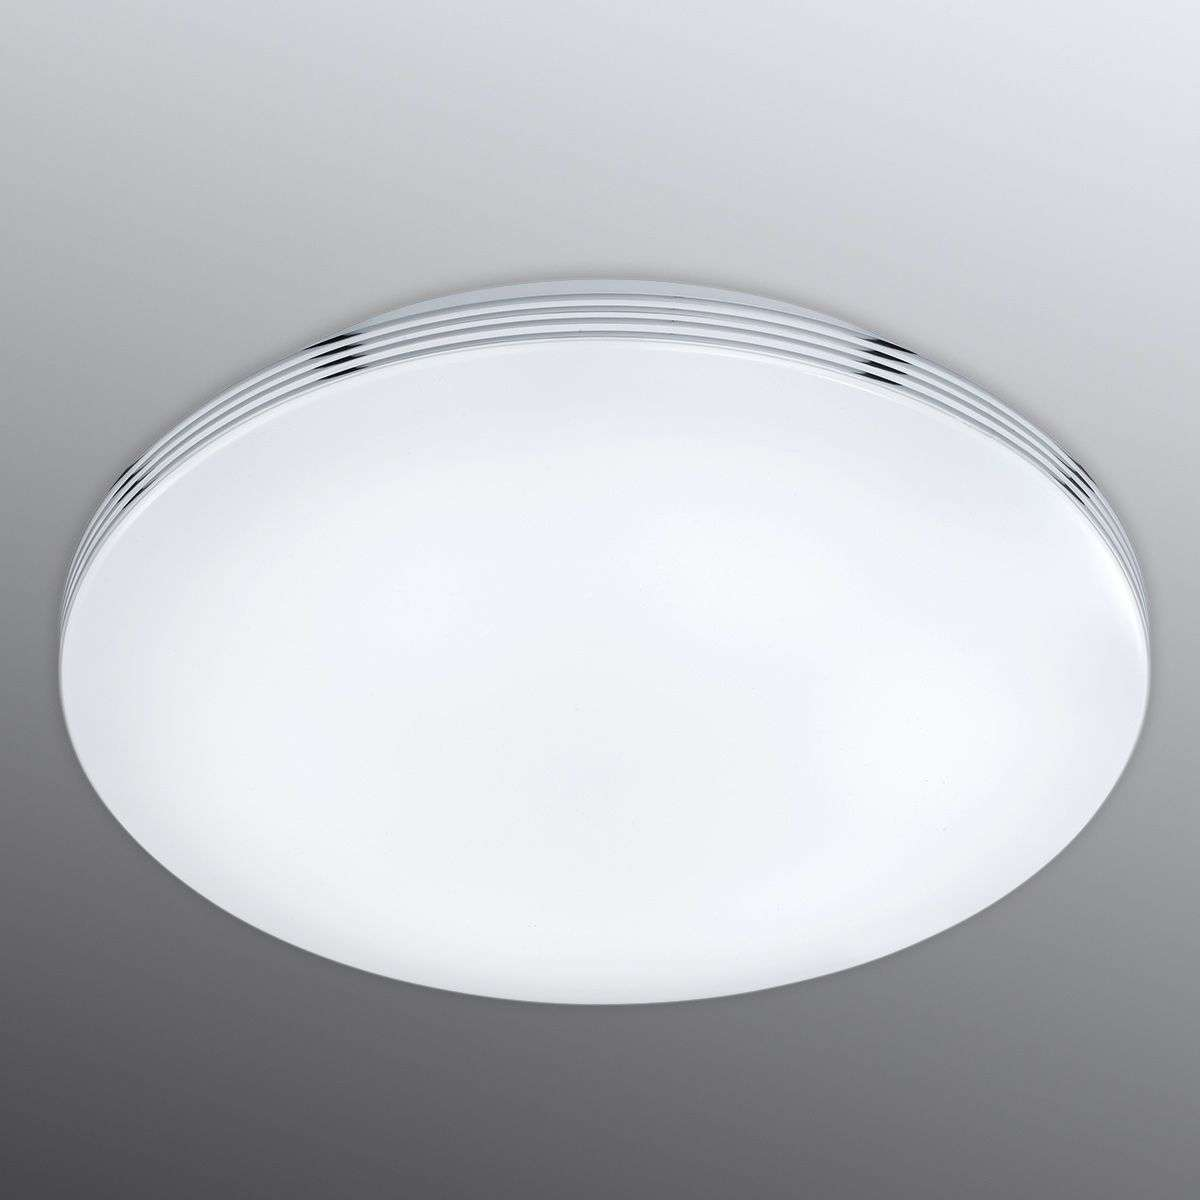 Led Ceiling Lights For Bathroom : Dimmable apart led bathroom ceiling light lights